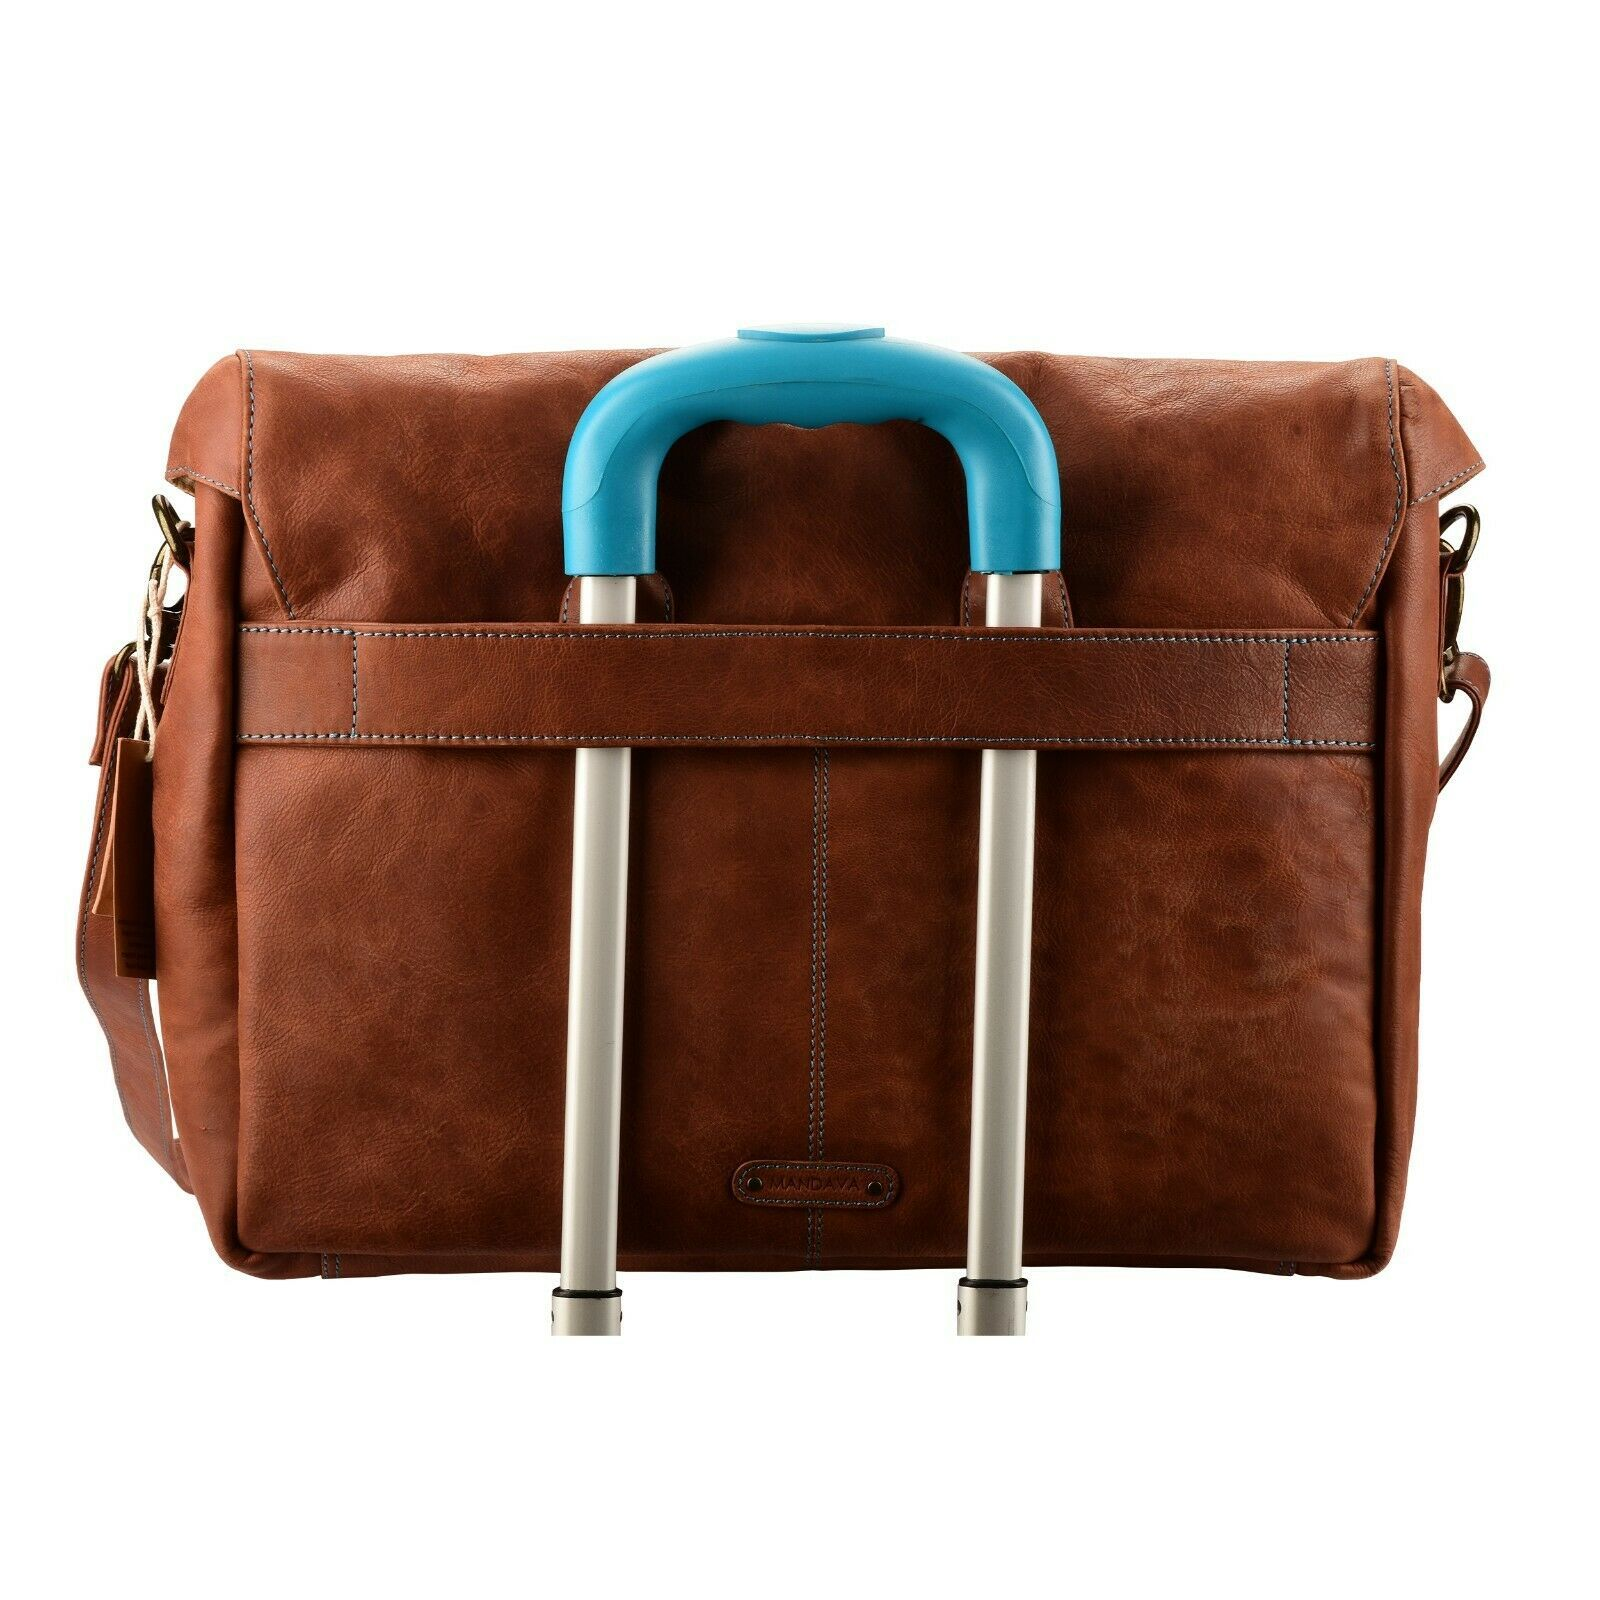 15 Inch Laptop Handmade Leather Messenger Bag Flap Over Office Briefcase